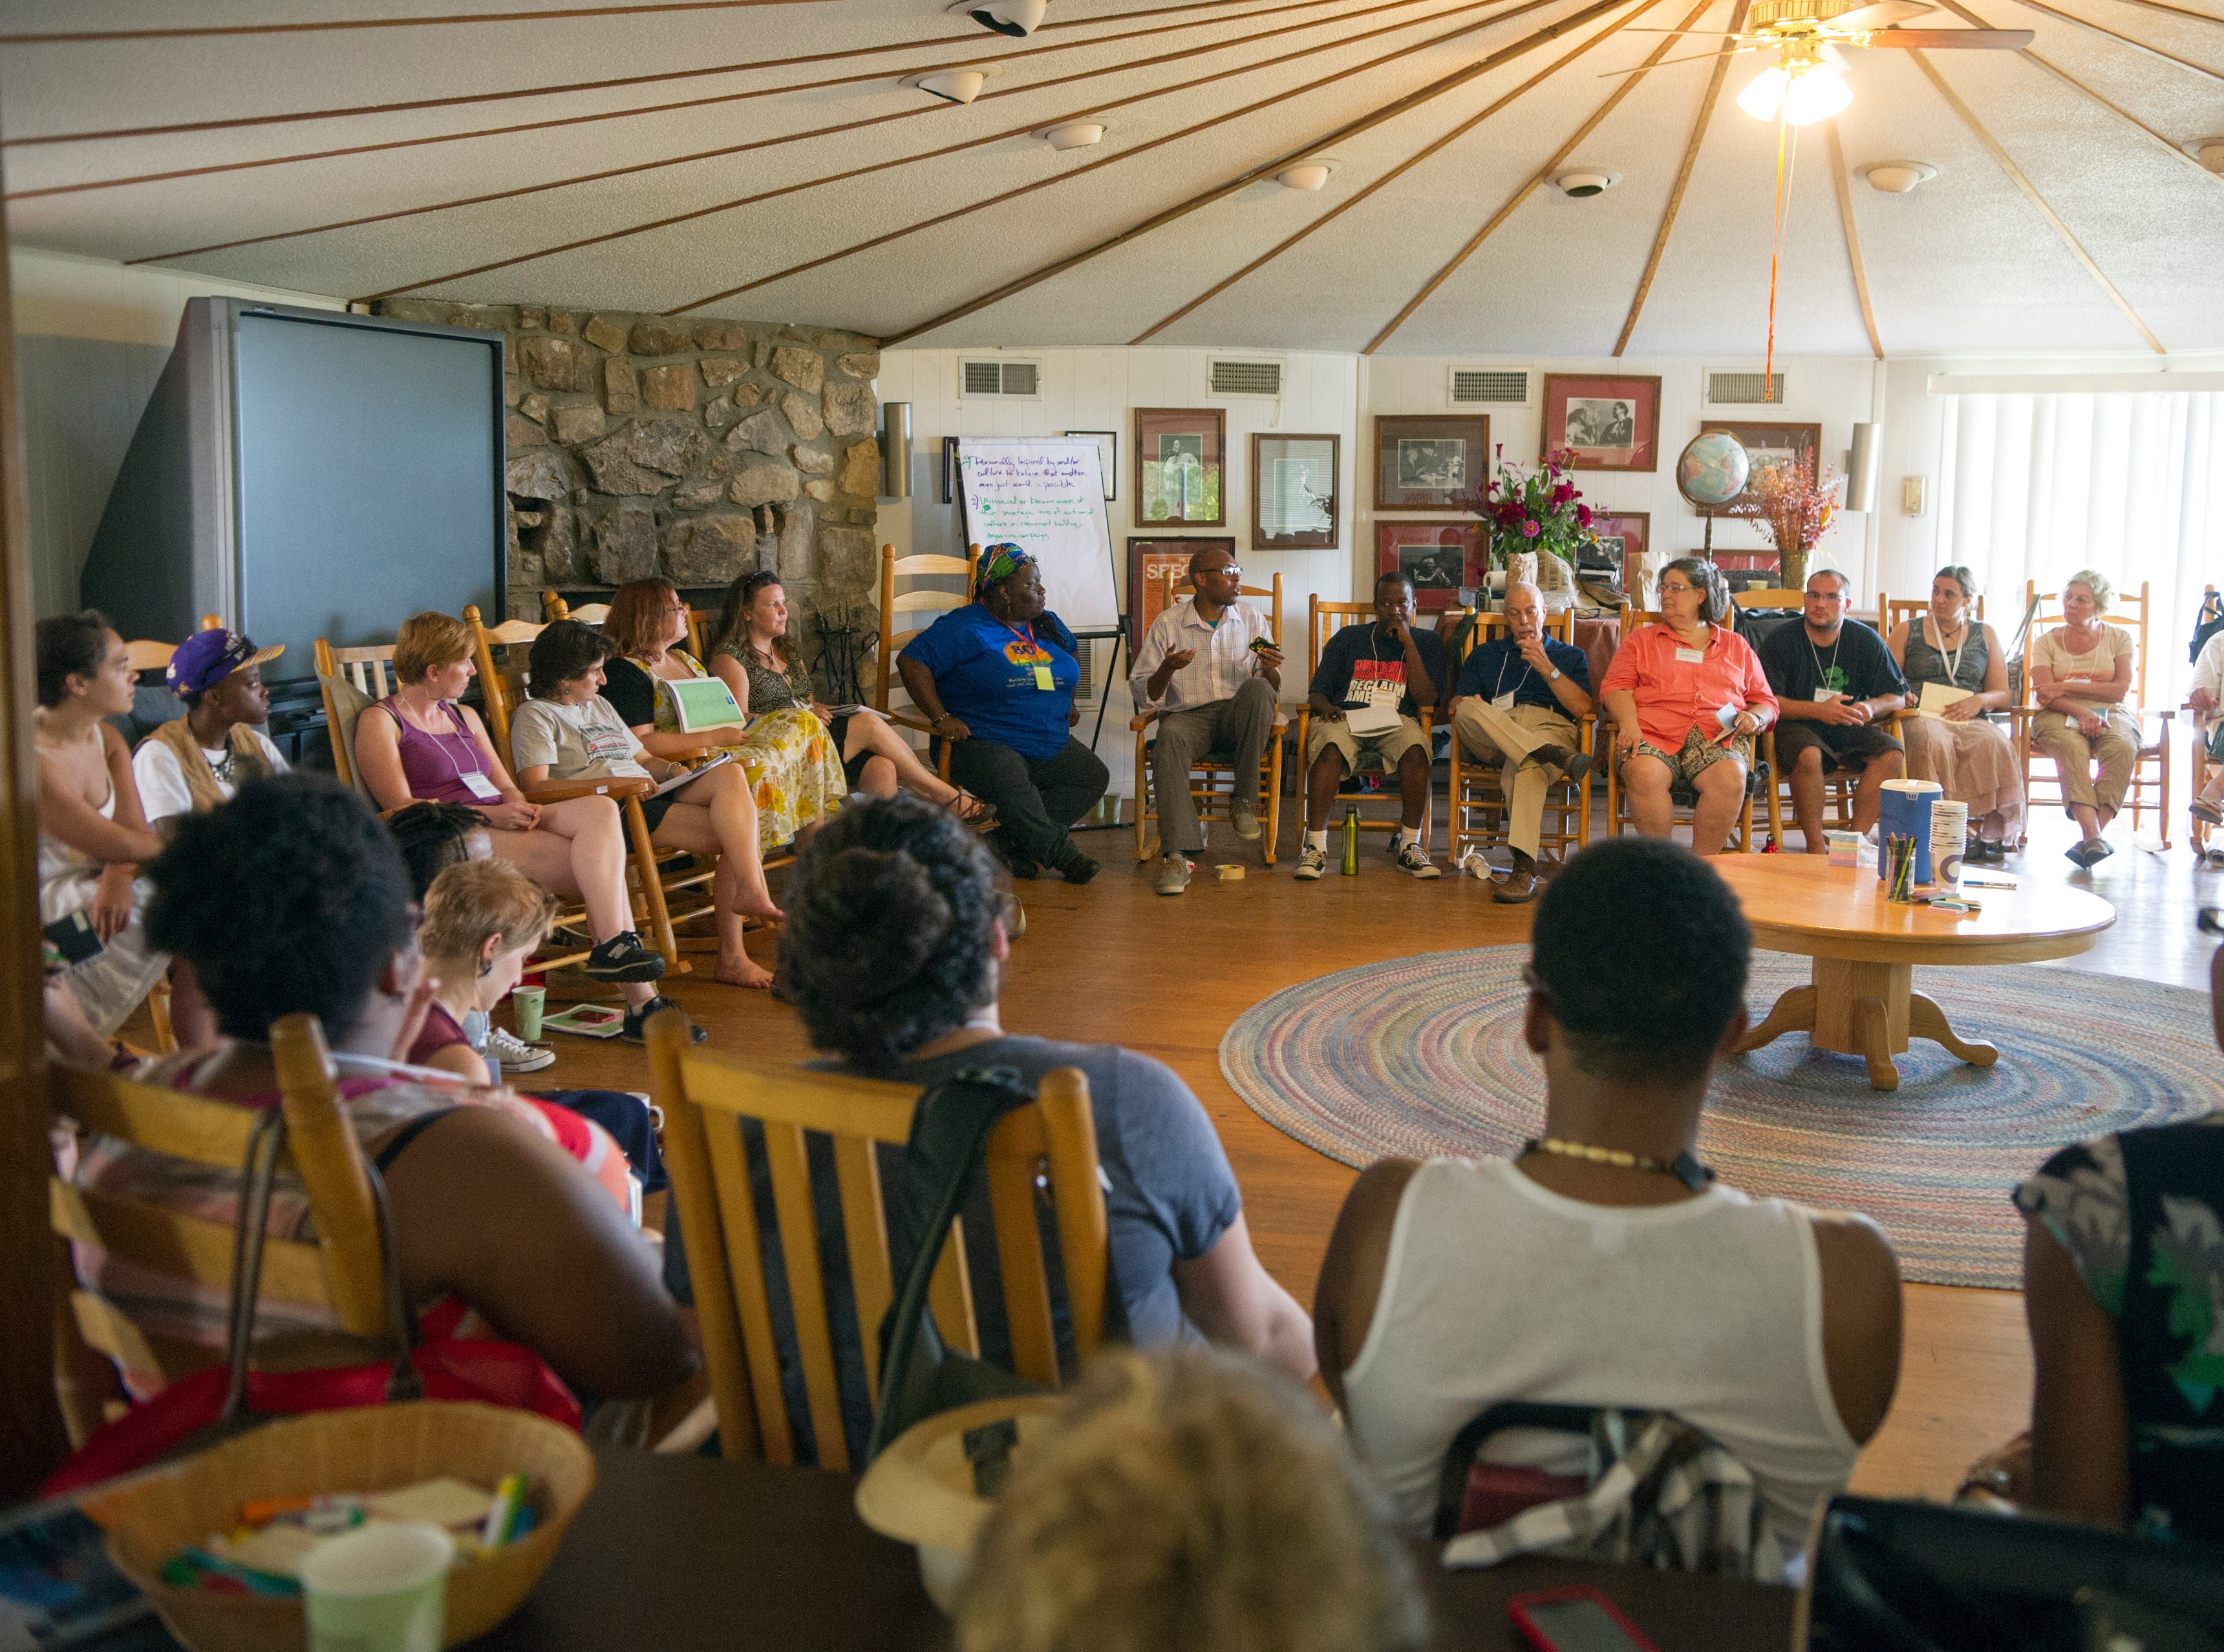 Attendees gather in the upper workshop center for a session on cultural organizing led by Marquez Rhyne and Tufara Waller Muhammad during the 80th anniversary celebration at the Highlander Research and Education Center in New Market Saturday, Sept. 1, 2012.